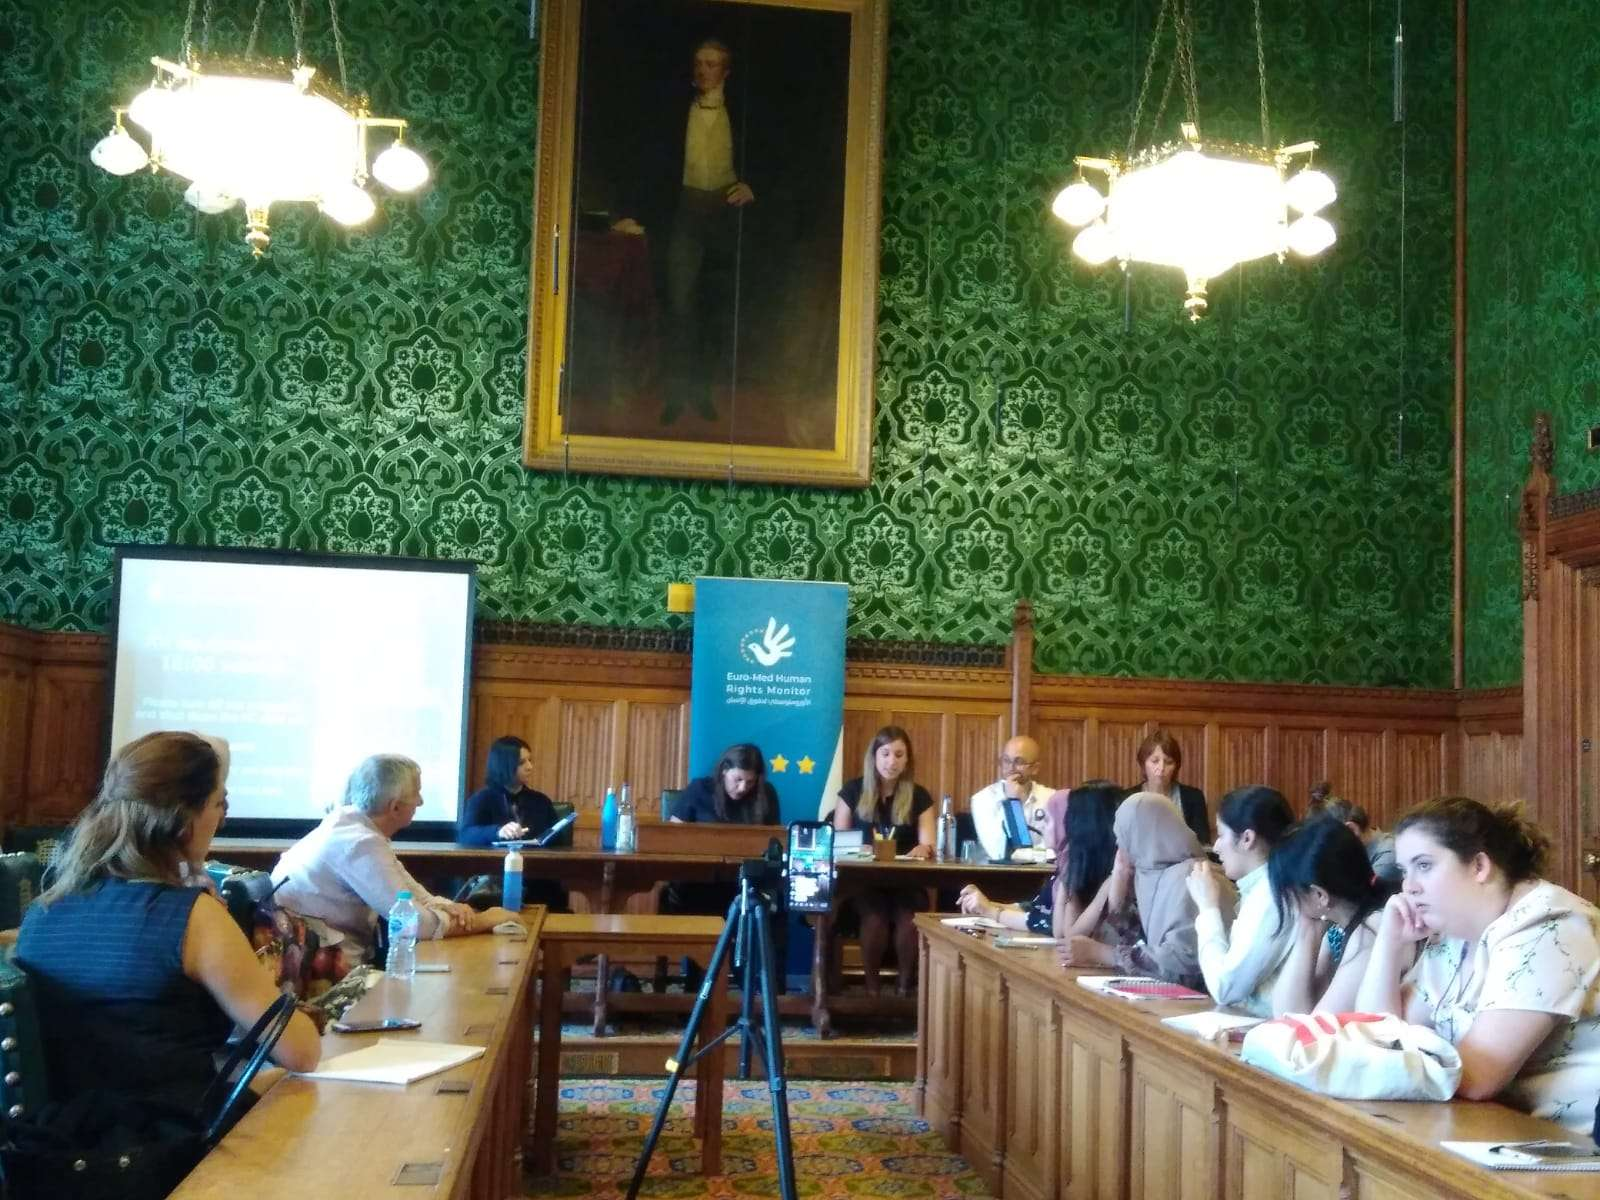 Euro-Med organizes seminar at UK parliament to address conflicts and women's rights in MENA region